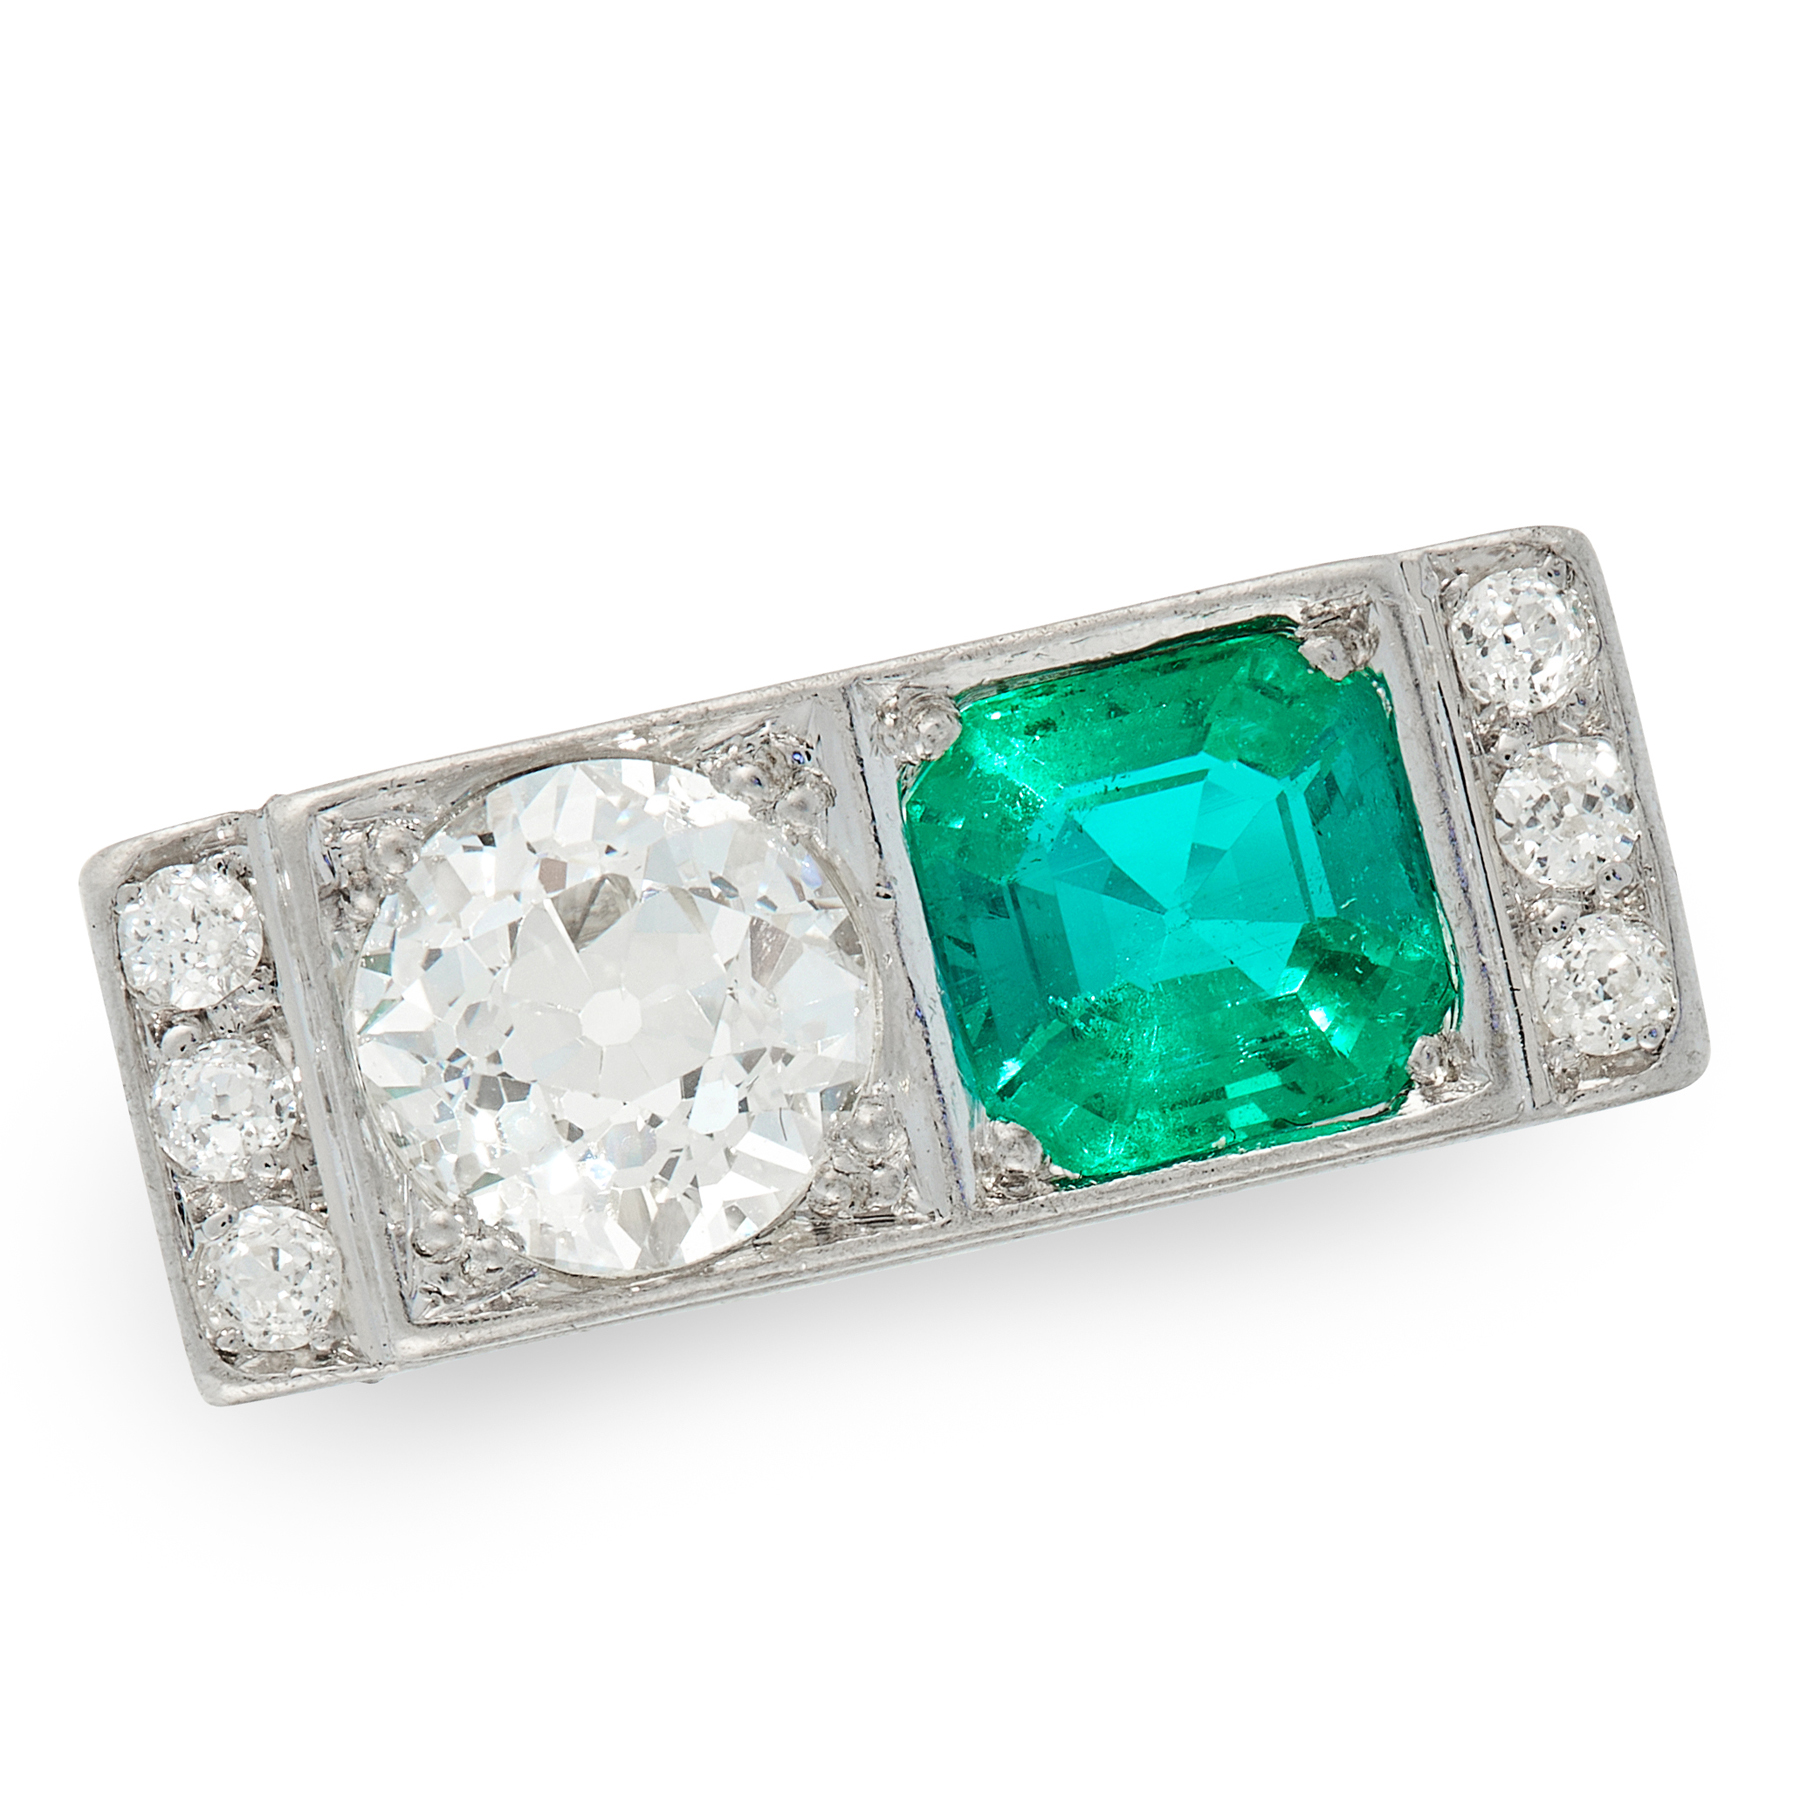 AN ART DECO COLOMBIAN EMERALD AND DIAMOND RING the rectangular face set with an emerald cut - Image 2 of 2